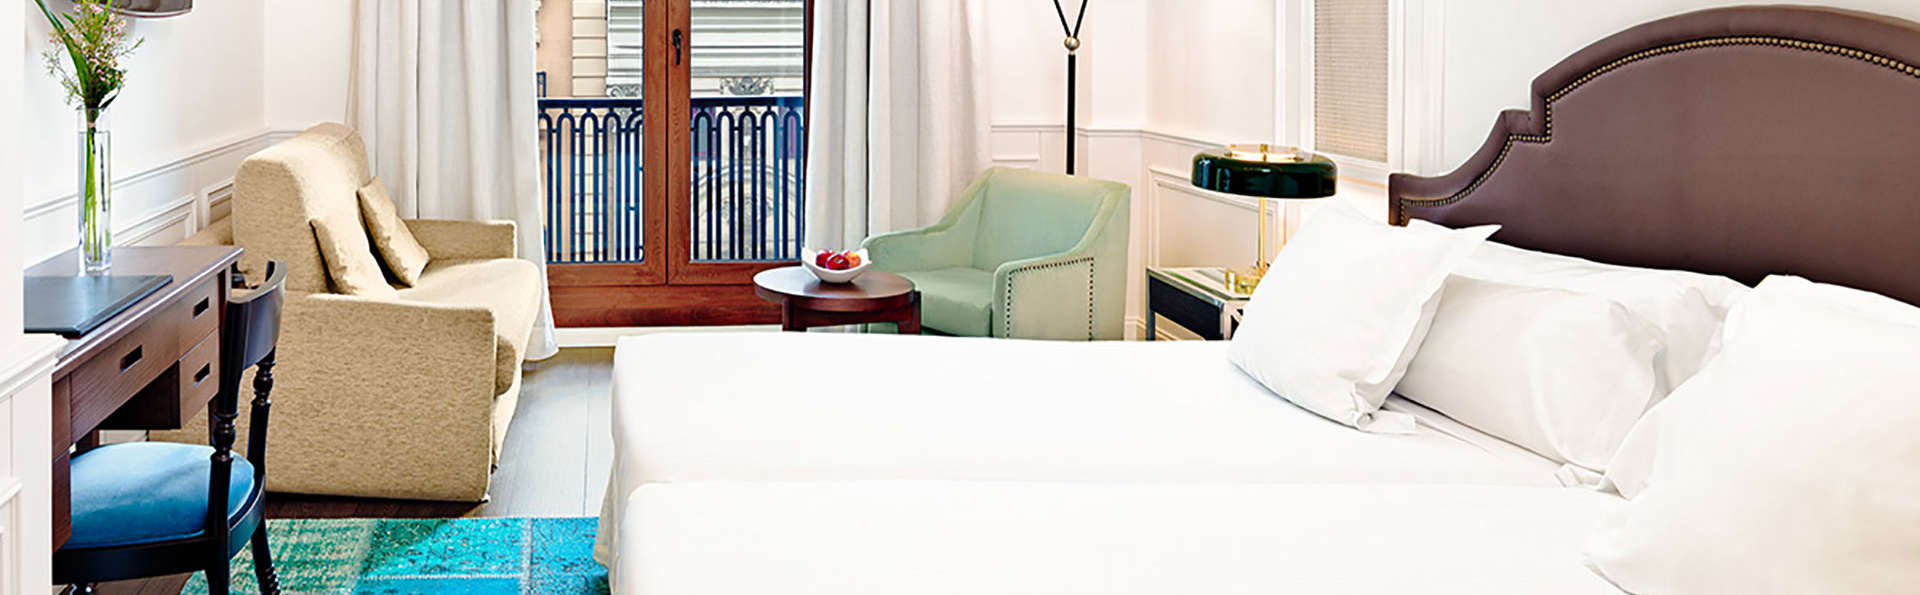 Boutique Hotel H10 Villa de la Reina - EDIT_room3.jpg